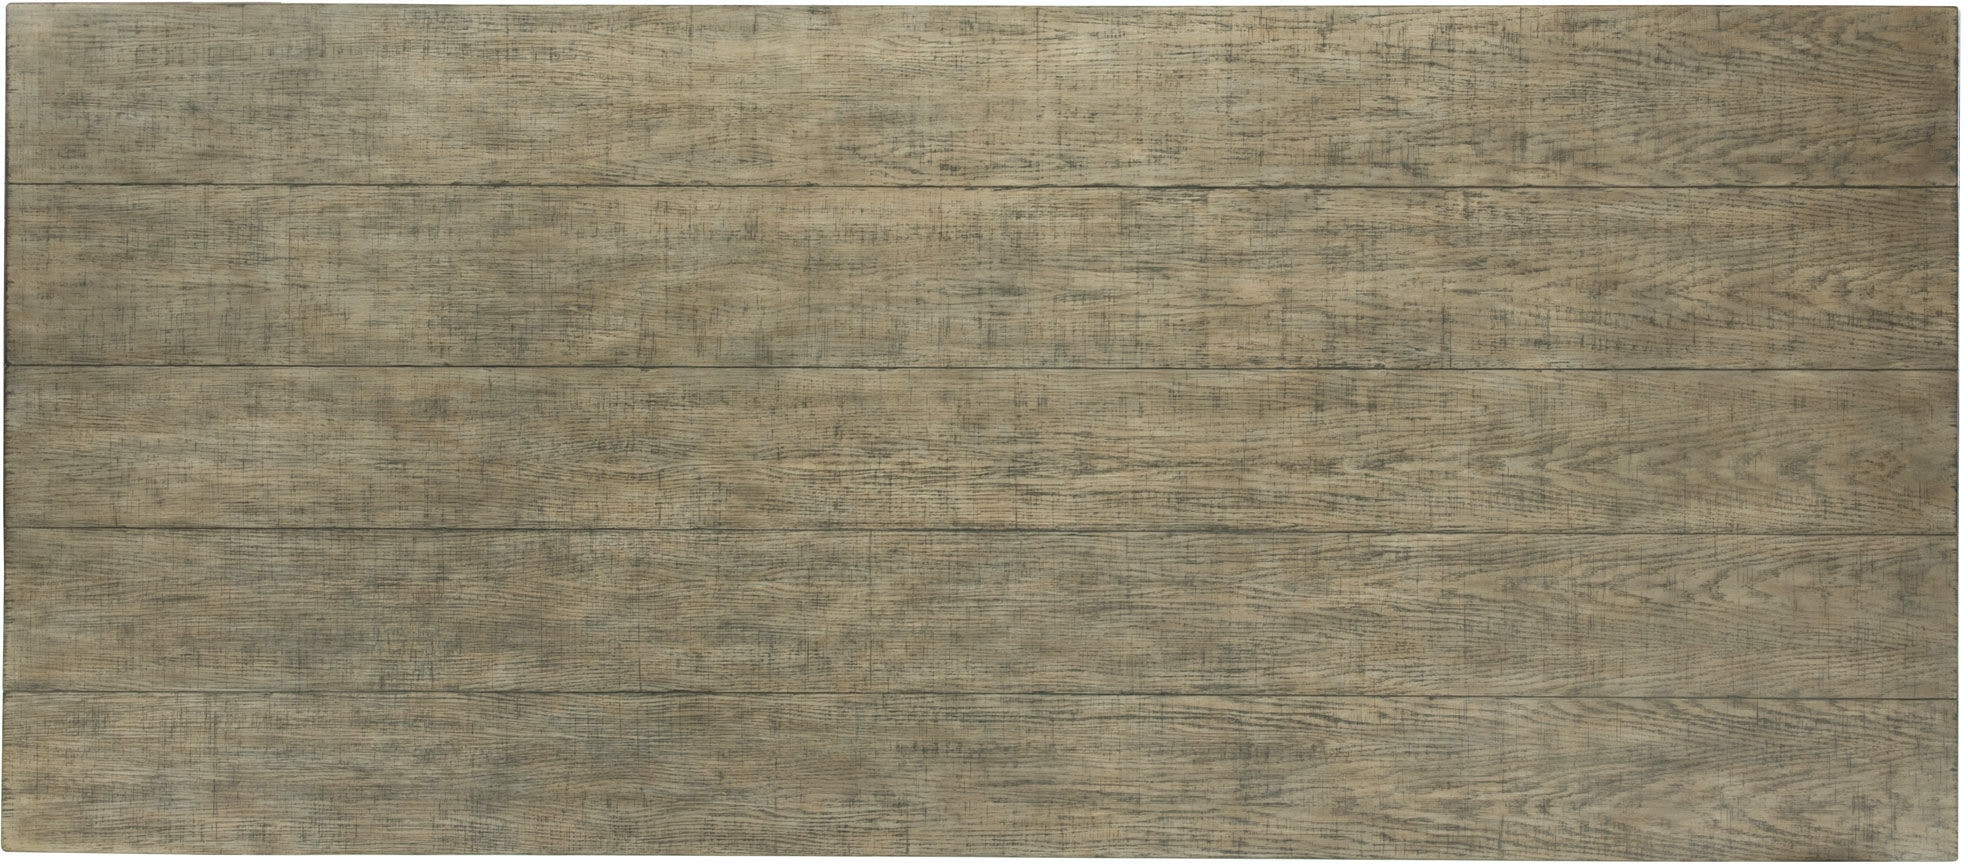 Bernhardt Interiors Dining Room Gervais Dining Table Top  : 366 223t366 223 2 from www.howellfurniture.com size 1024 x 768 jpeg 67kB